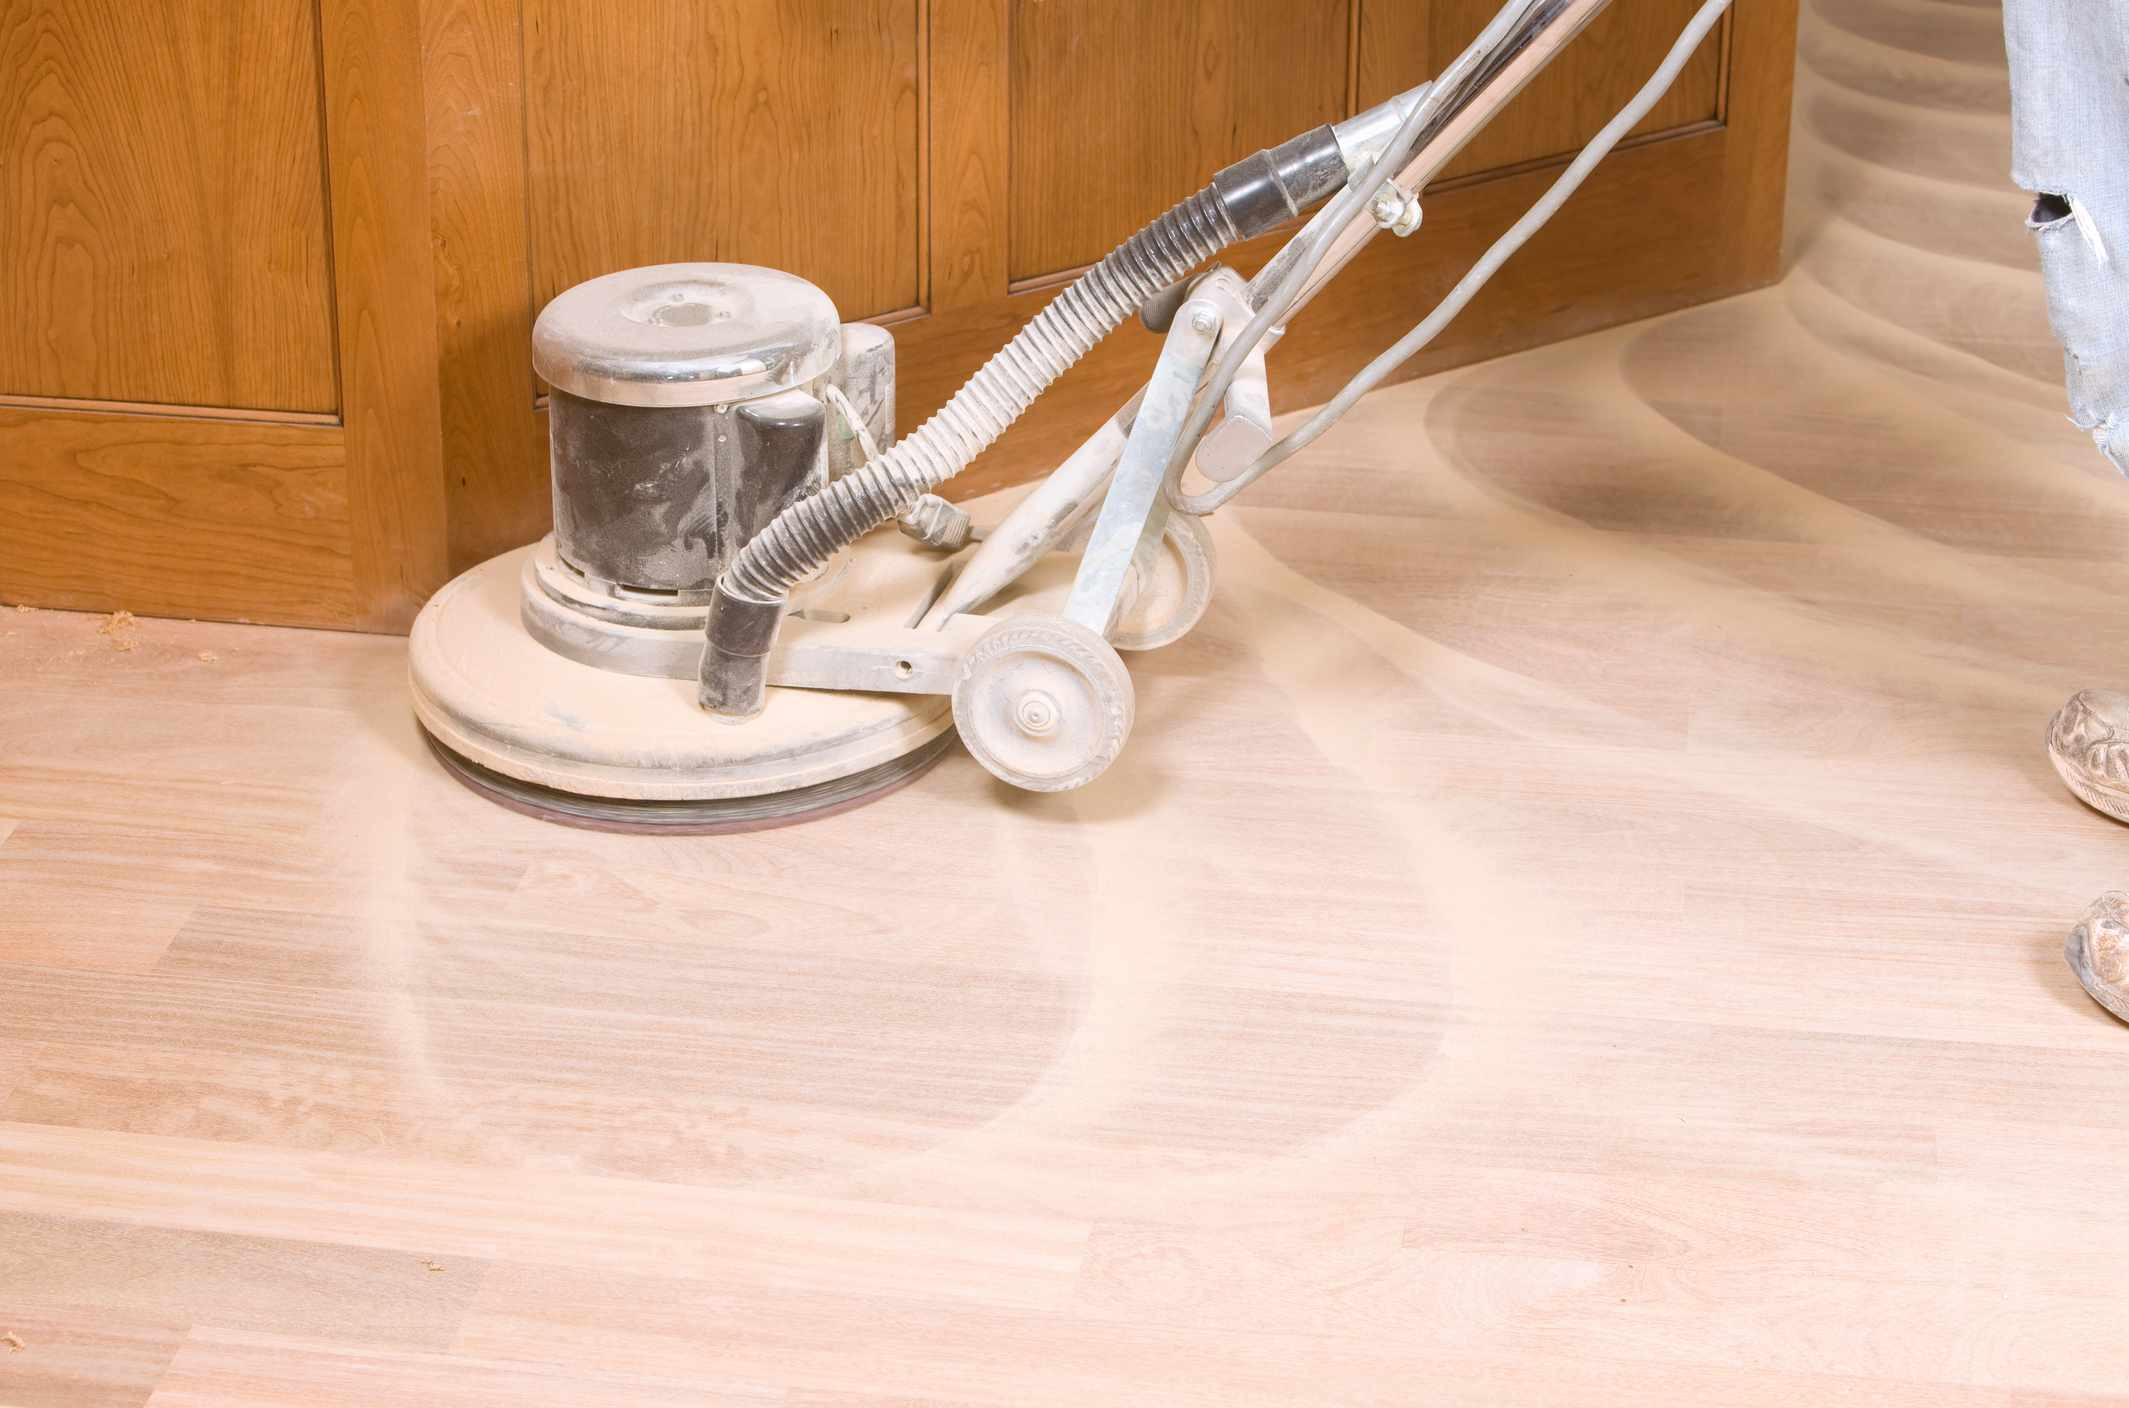 restain hardwood floors without sanding of how to sand hardwood floors with regard to gettyimages 183768766 587b01a45f9b584db3a5315f